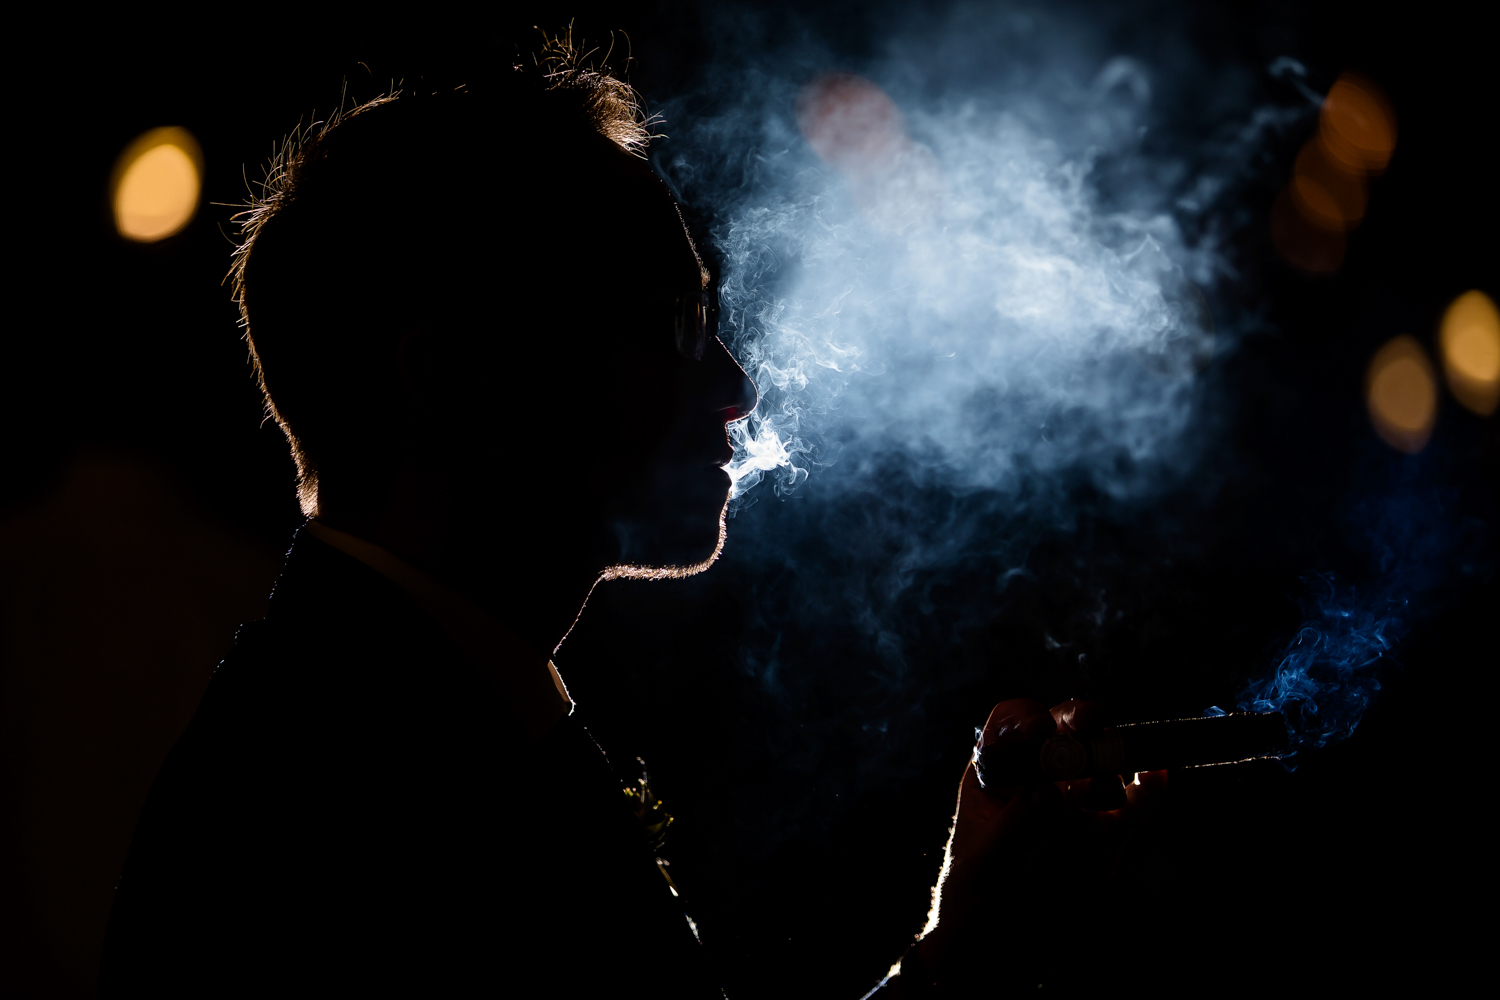 Groom smoking cigar silhouette